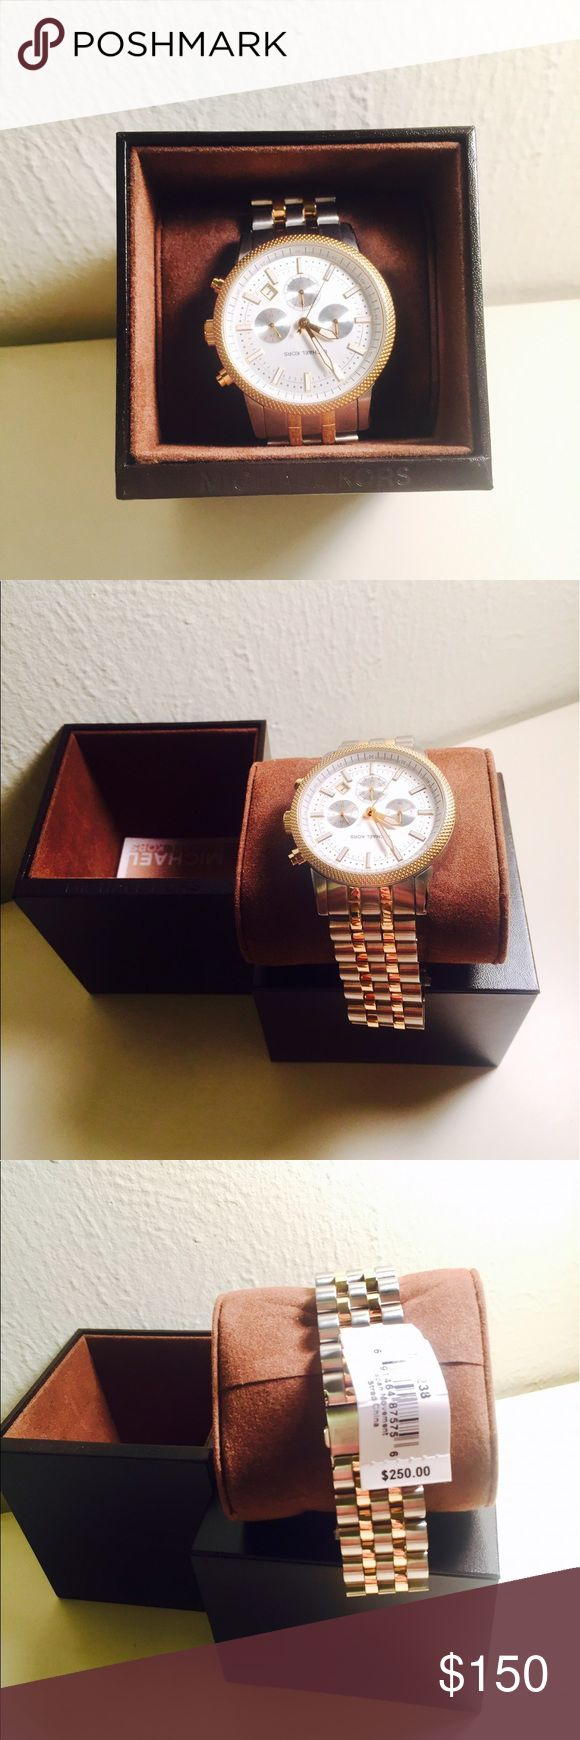 Never Used! Michael KORS Men's Watch MK8238 MICHAEL KORS- Scout Silver Dial Chronograph Two Tone Mens Watch MK8238 Never Used, With Box & Price Tag Michael Kors Accessories Watches